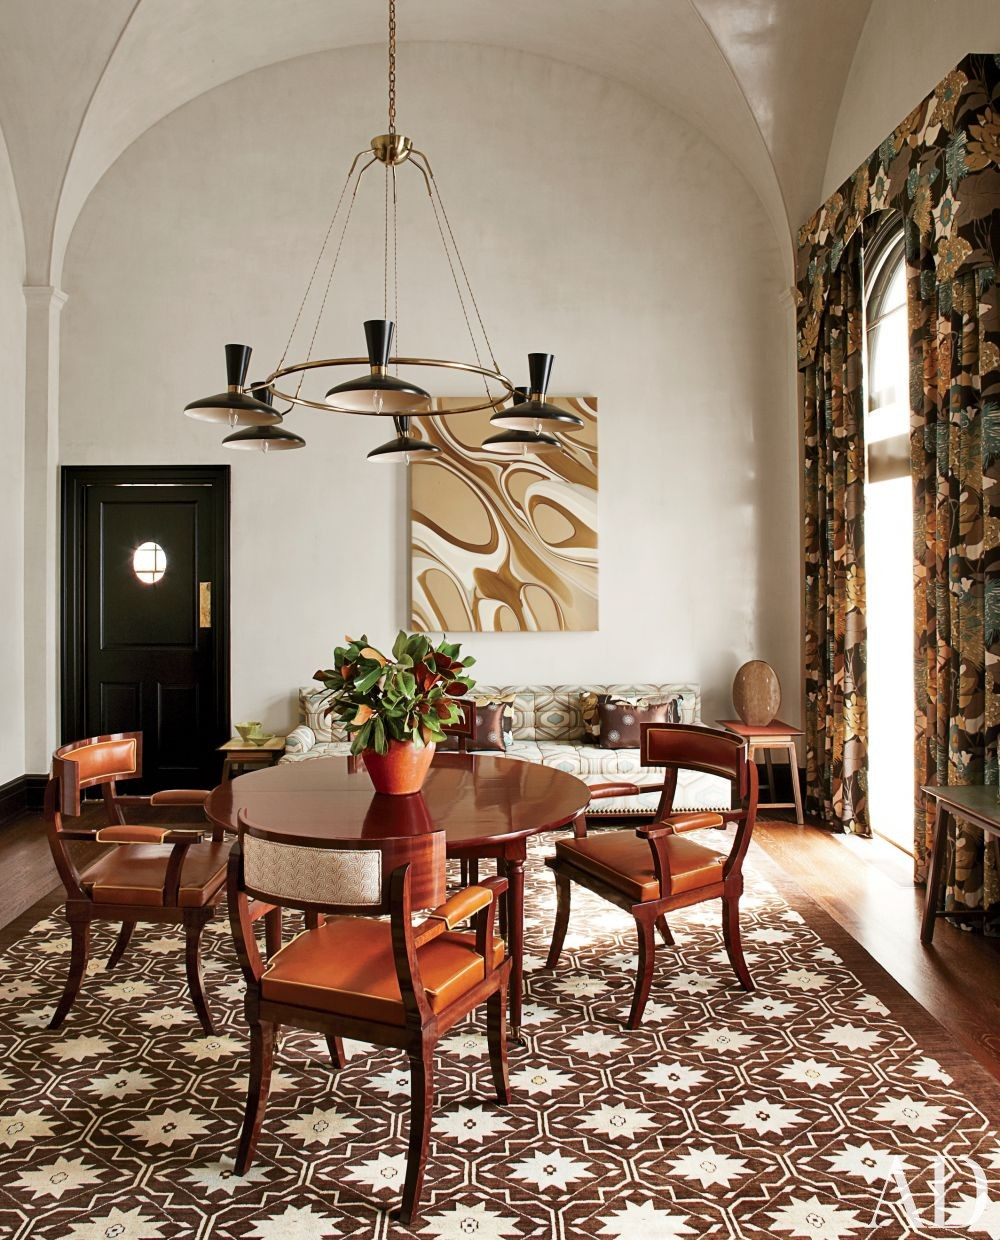 Contemporary Dining Room by S.R. Gambrel Inc. and Oliver Cope Architect in Old Westbury, New York